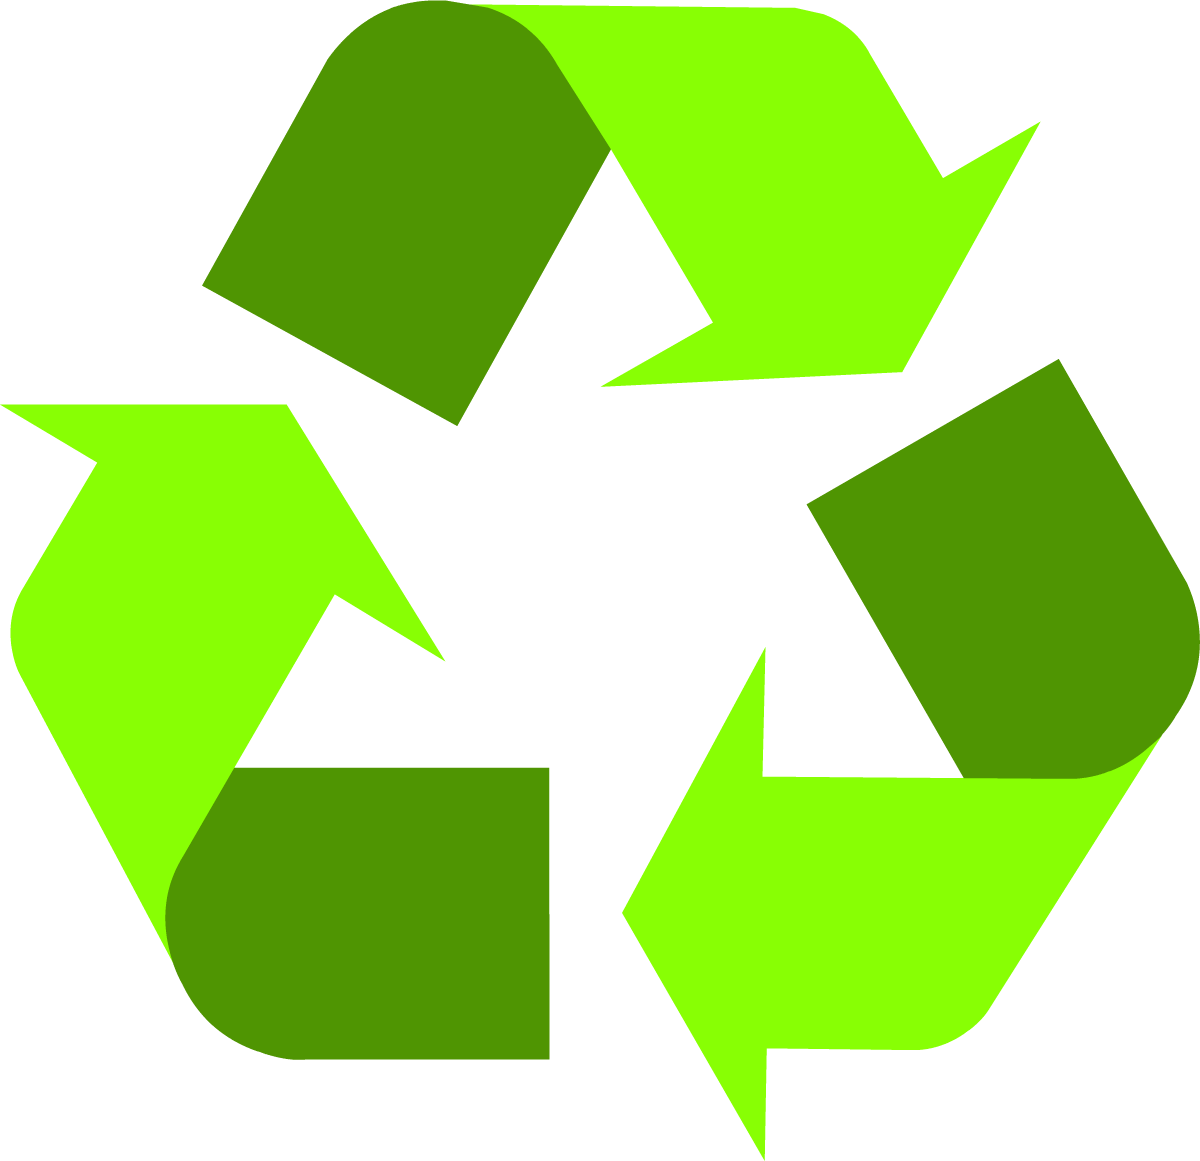 Kibu-Test recycling-symbol-icon-twotone-light-green